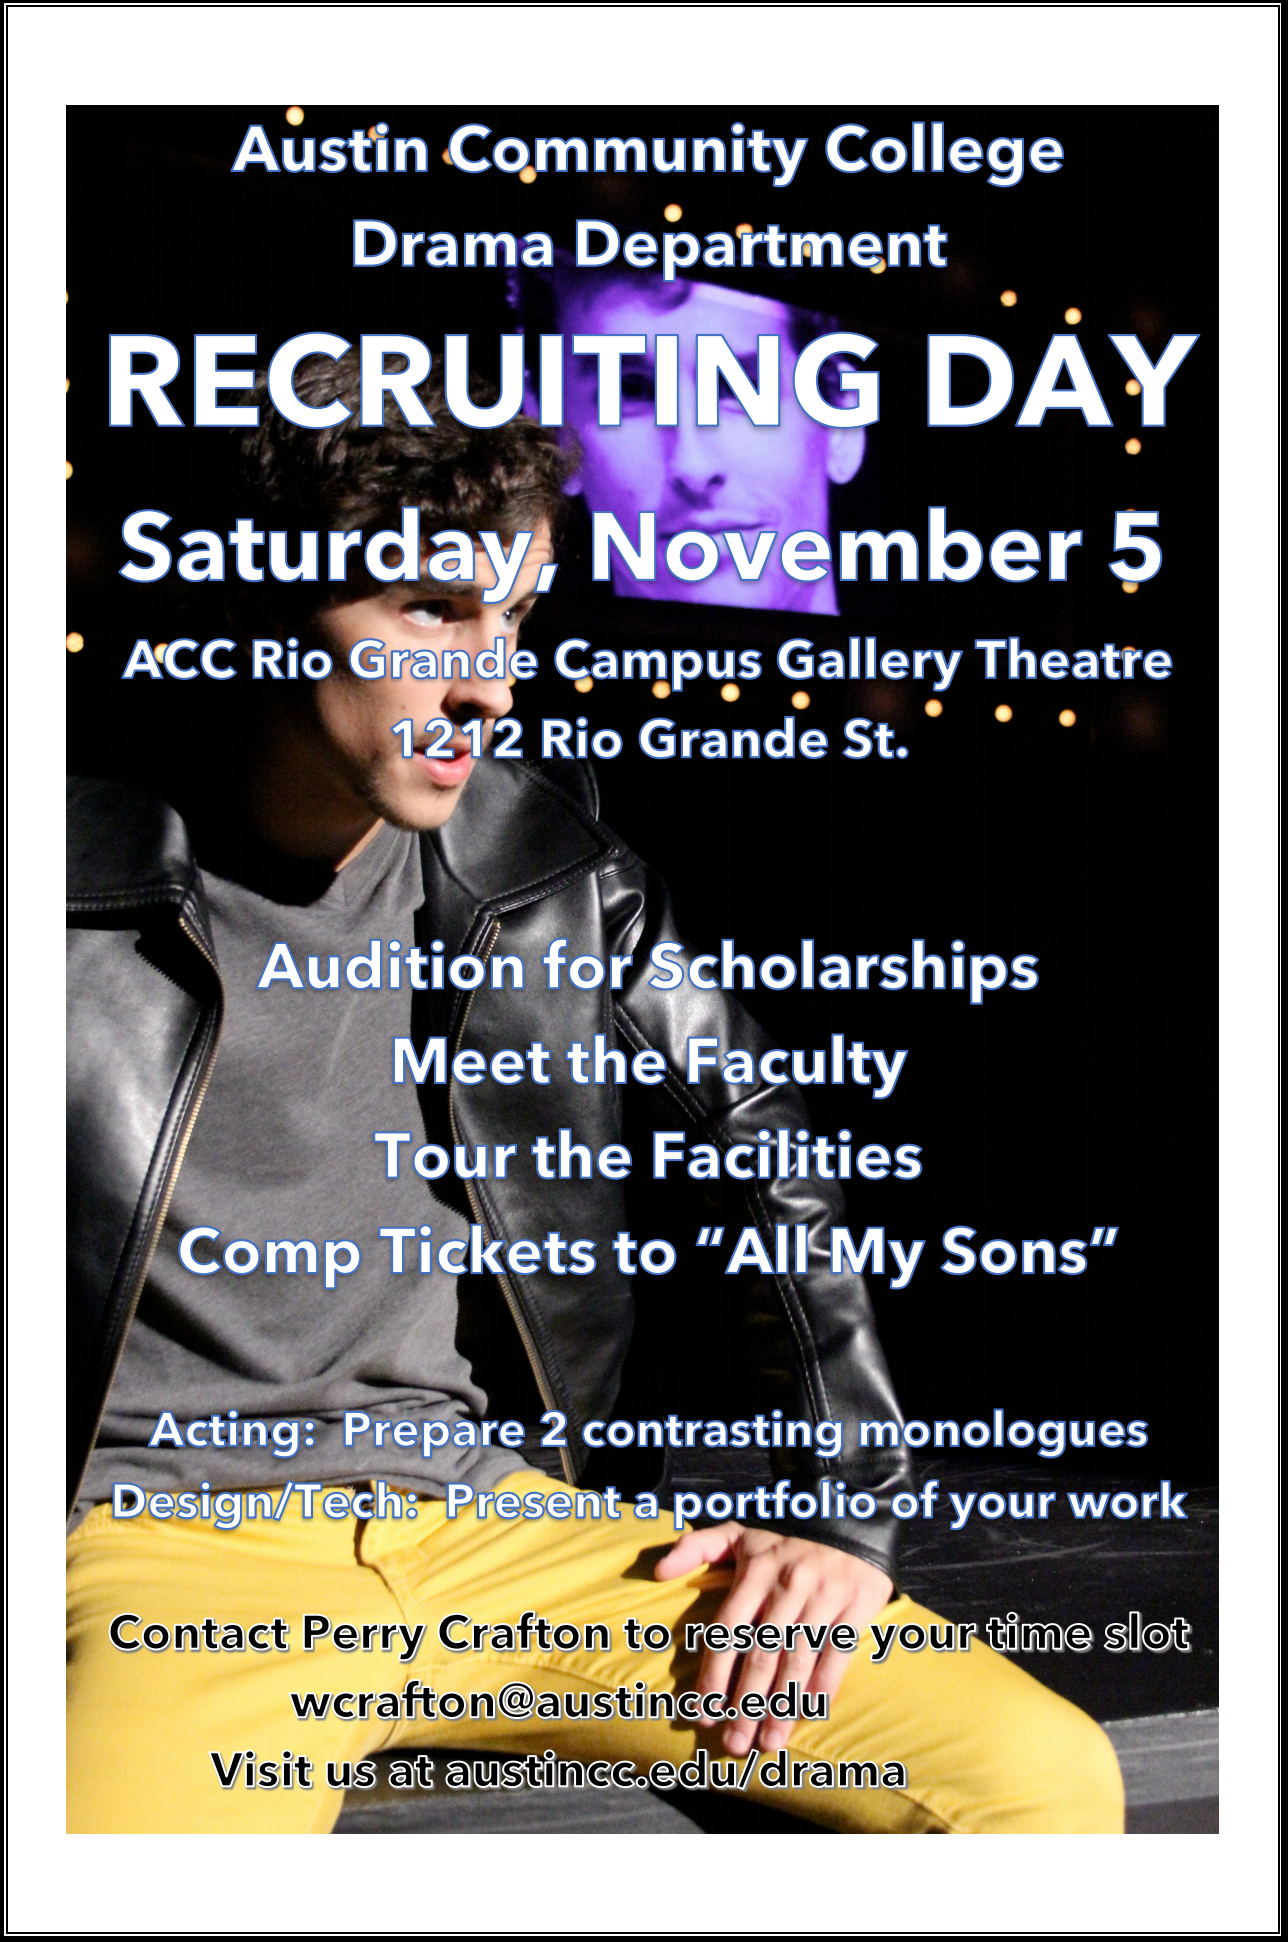 Flyer for Recruiting Day on Saturday November 5.